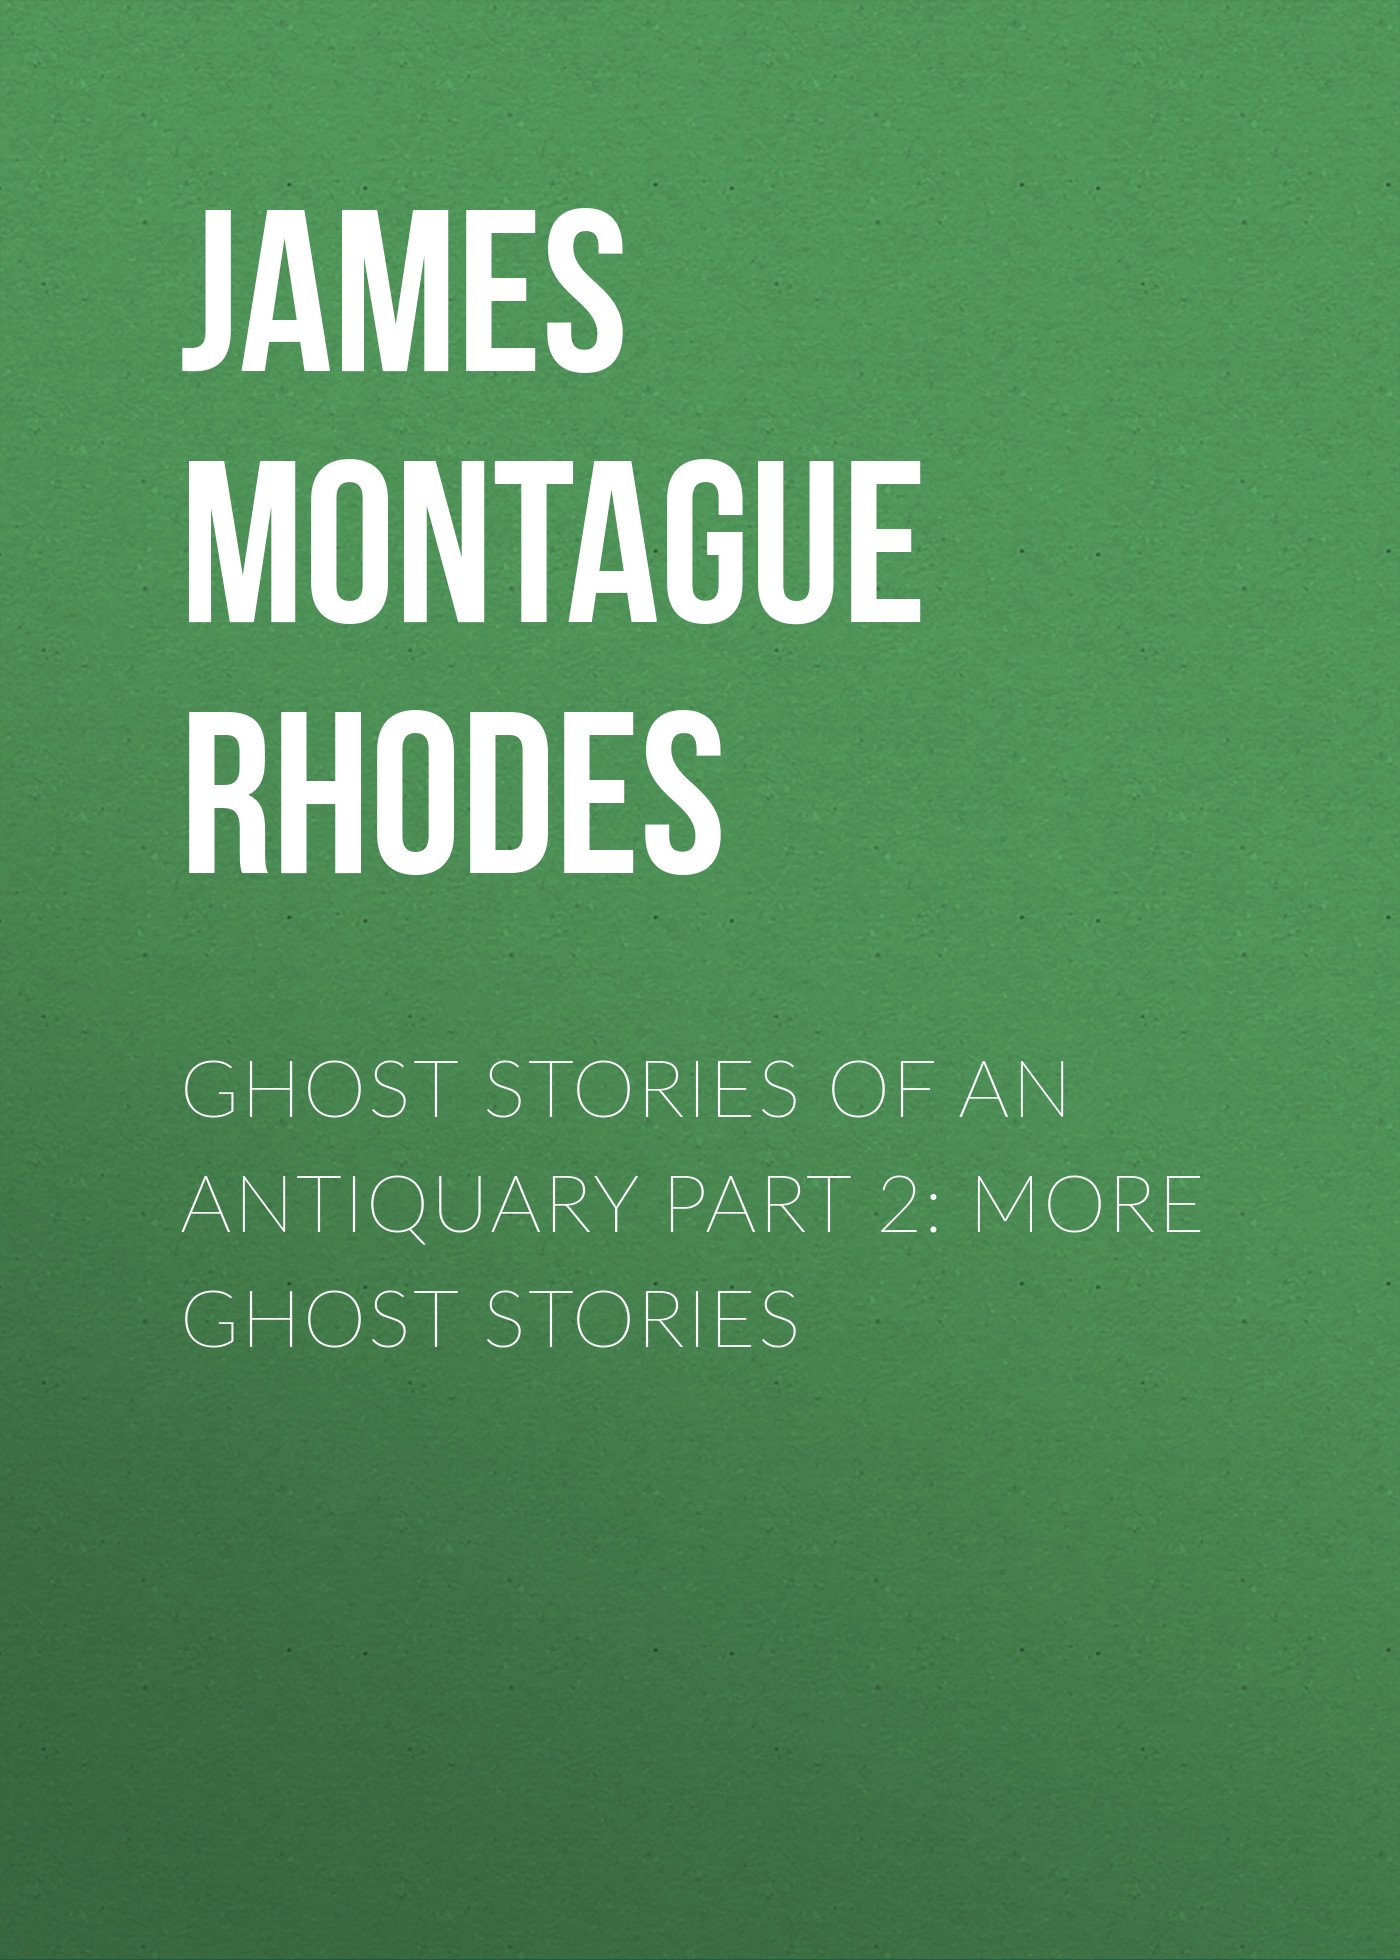 лучшая цена James Montague Rhodes Ghost Stories of an Antiquary Part 2: More Ghost Stories